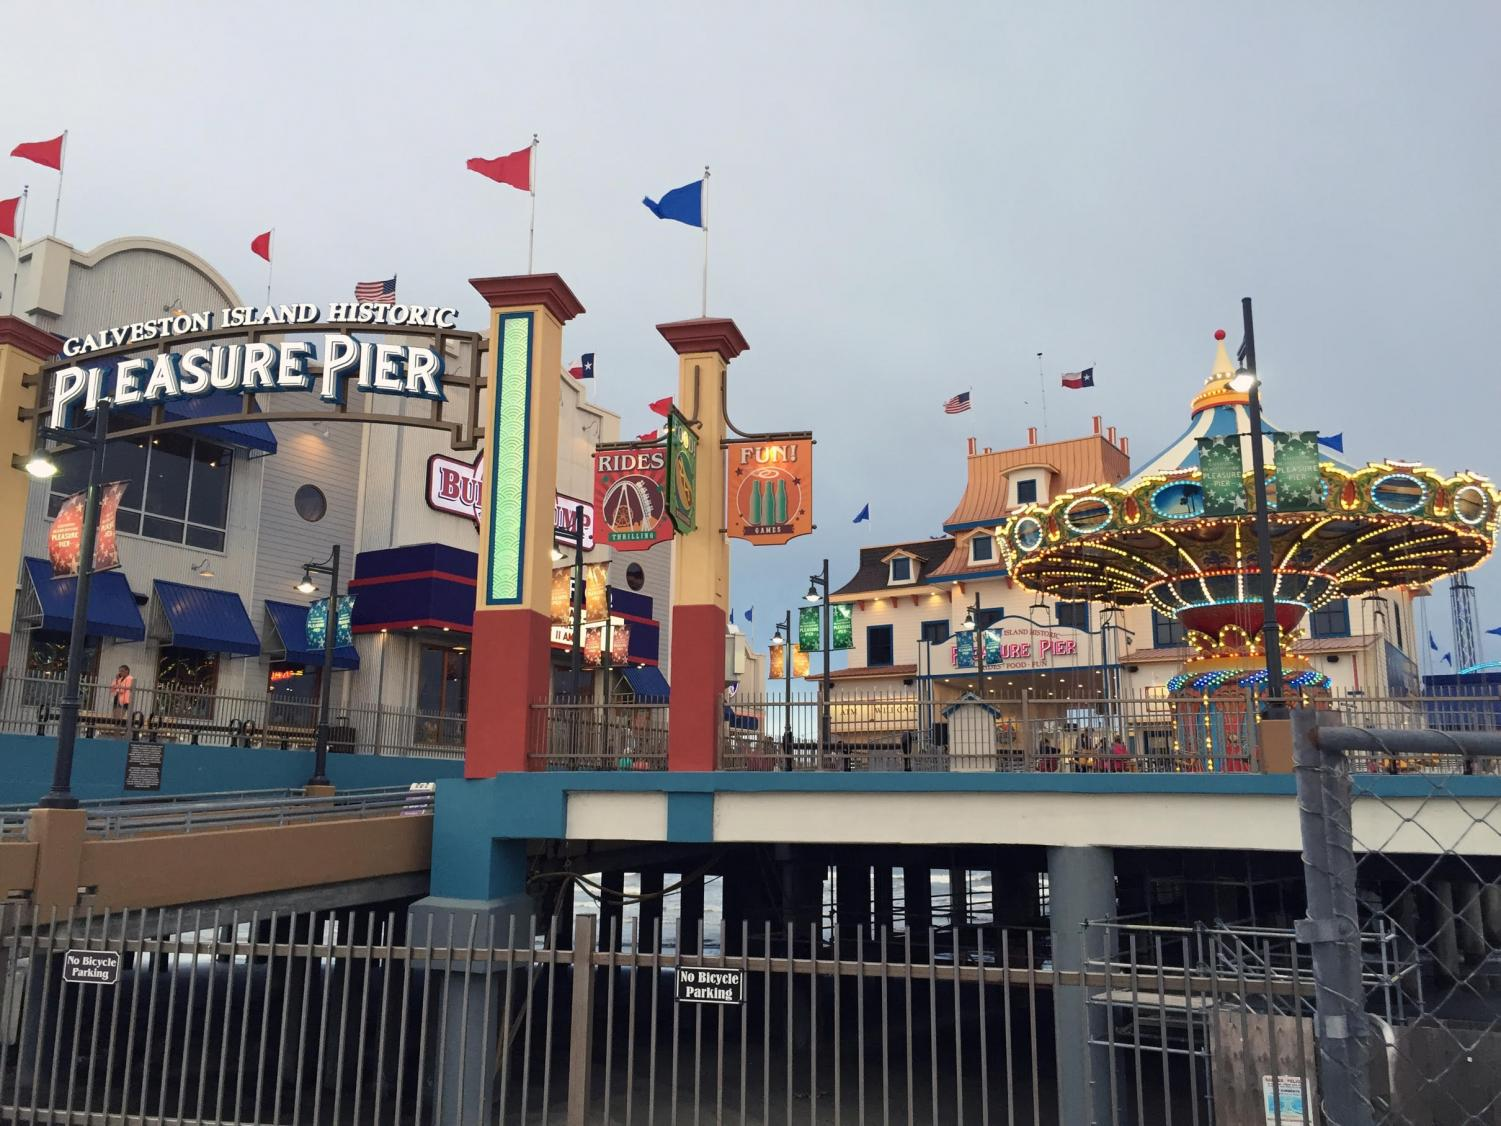 The Galveston Island Historic Pleasure Pier is a classic amusement park that stretches 100 feet out into the Texas gulf coast. Although built in 2012, it is a recreation of the famous Pleasure Pier built in 1943, which was destroyed in by hurricane Carla in 1961. Photo courtesy of the Texas Historical Commission